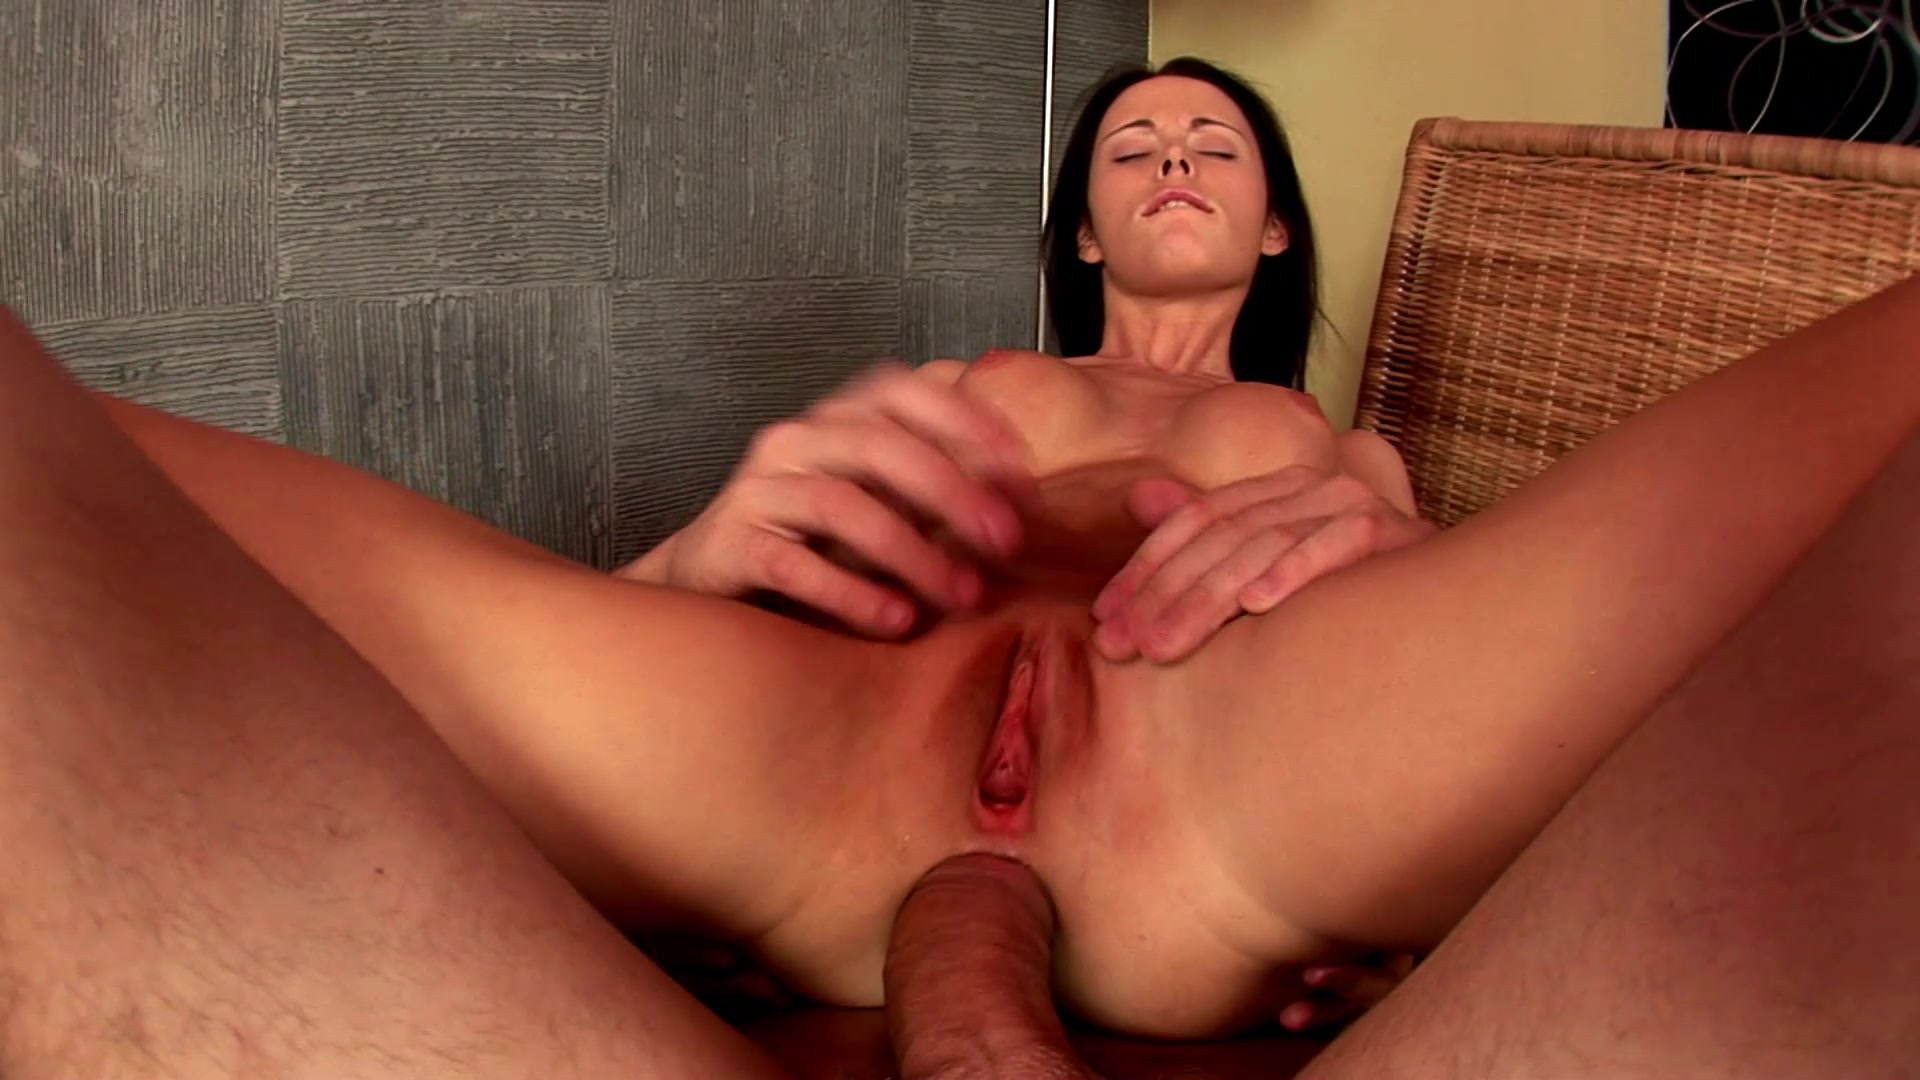 anal defloration video